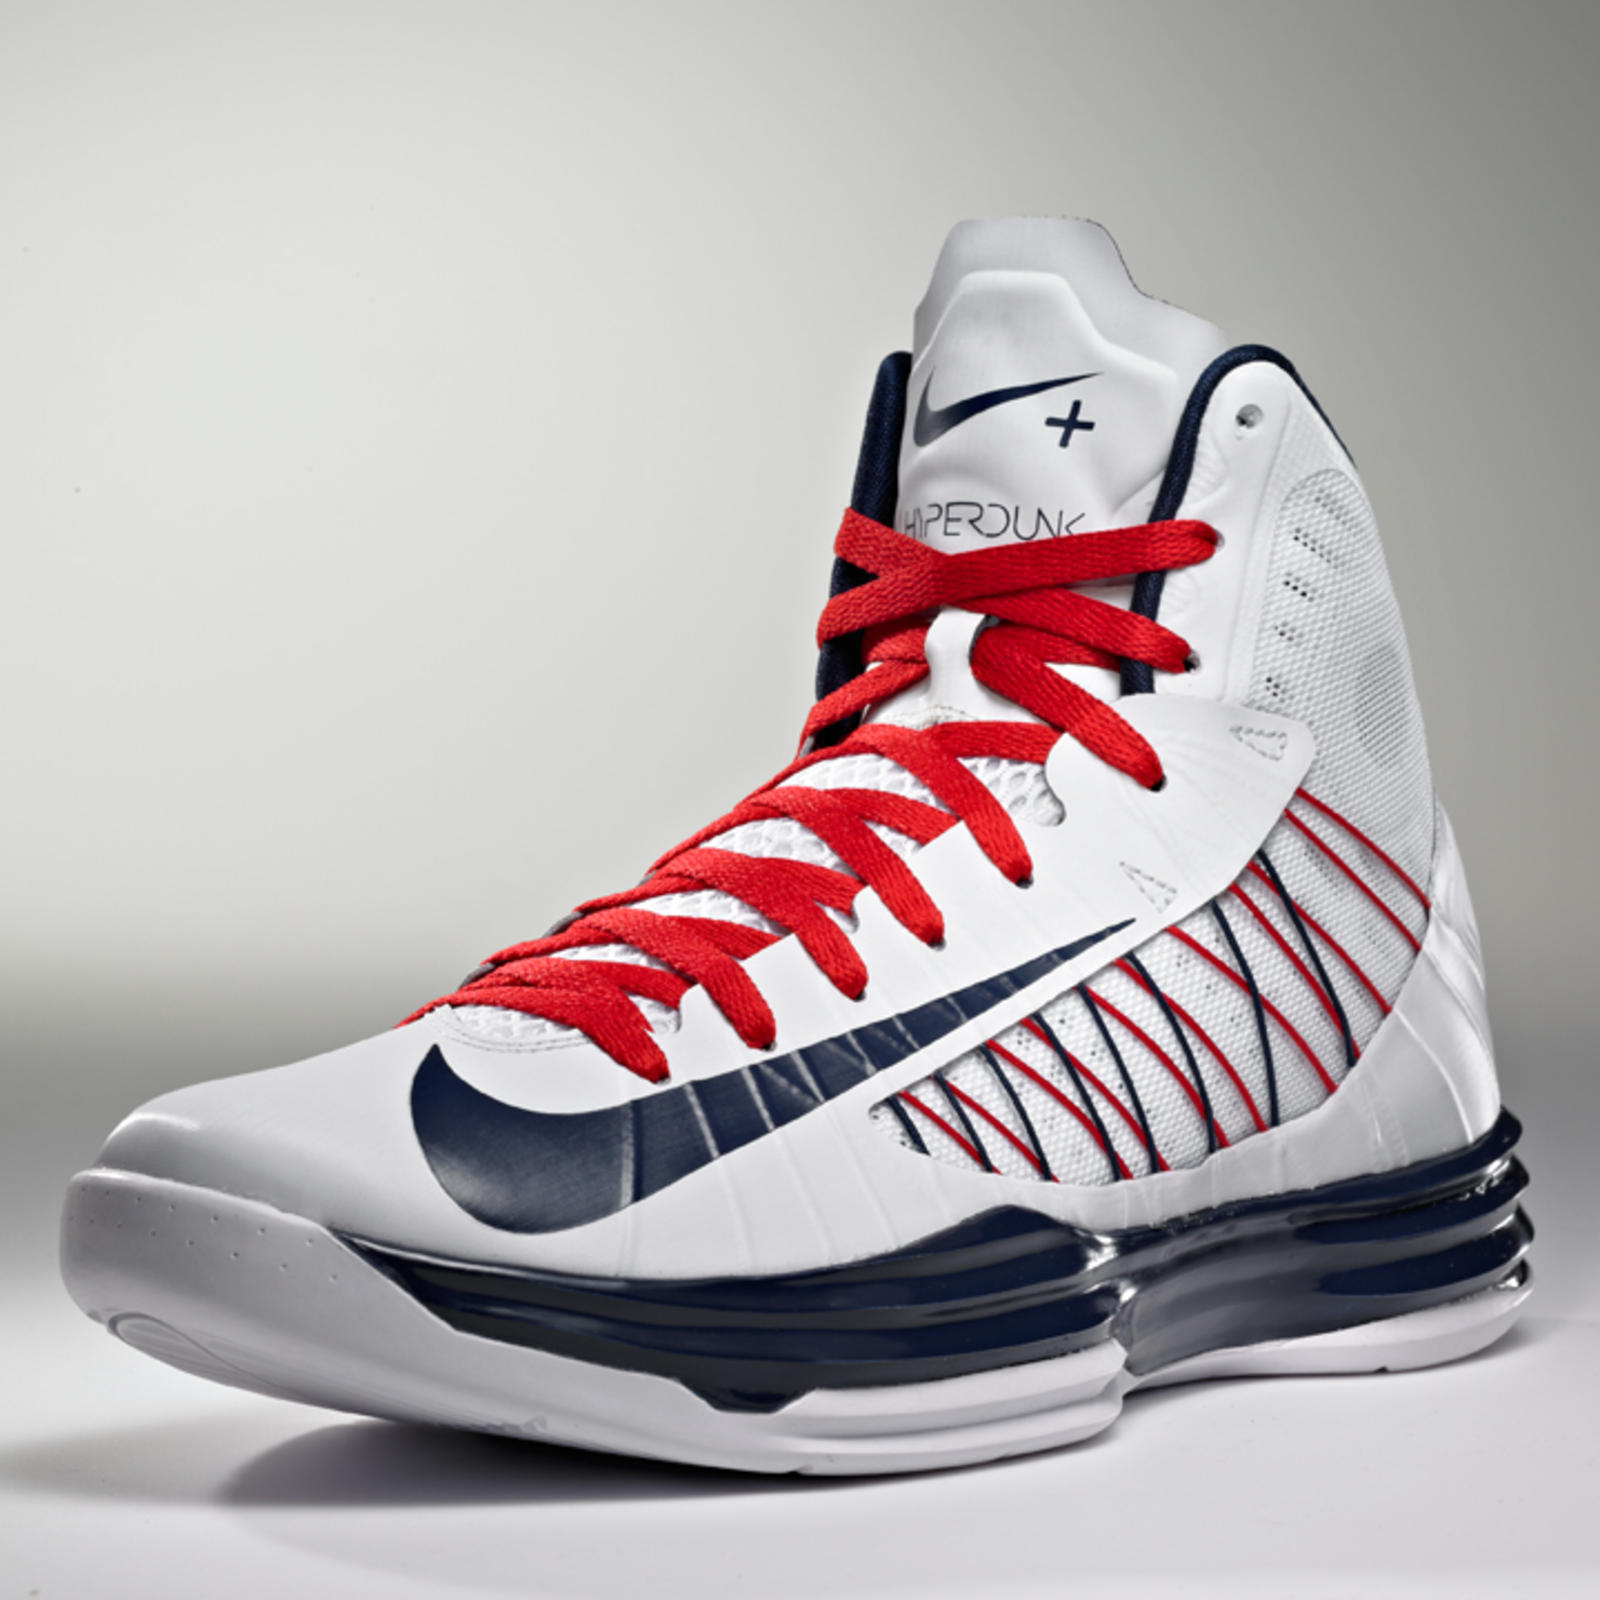 USA Men's Basketball Team Members Debut NIKEiD Shoes ...